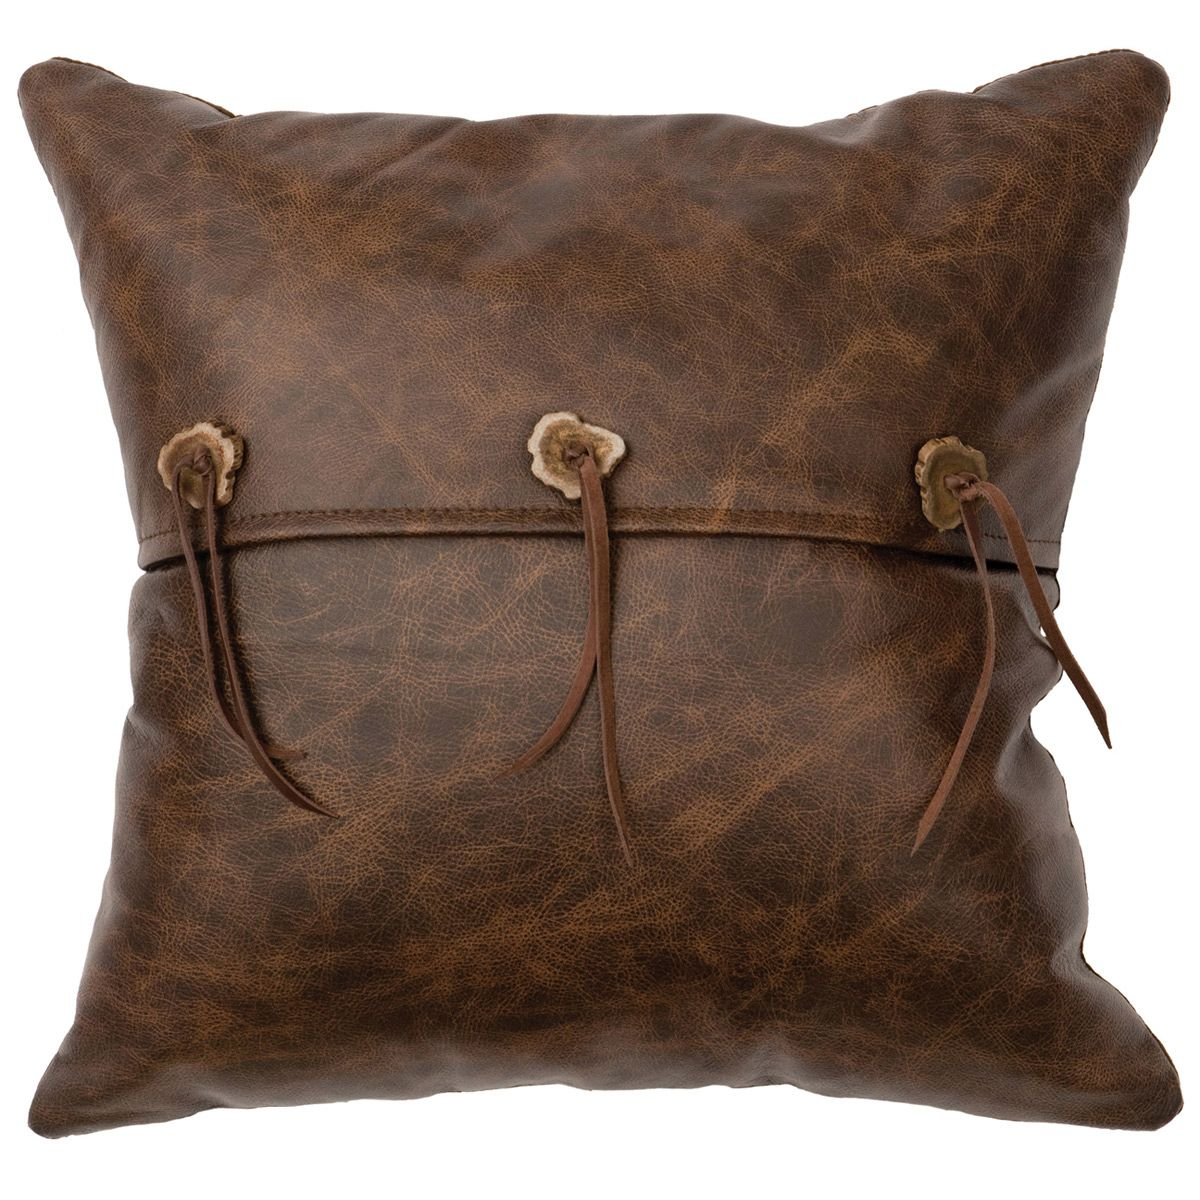 Leather Pillow with Antler Buttons - Fabric Back